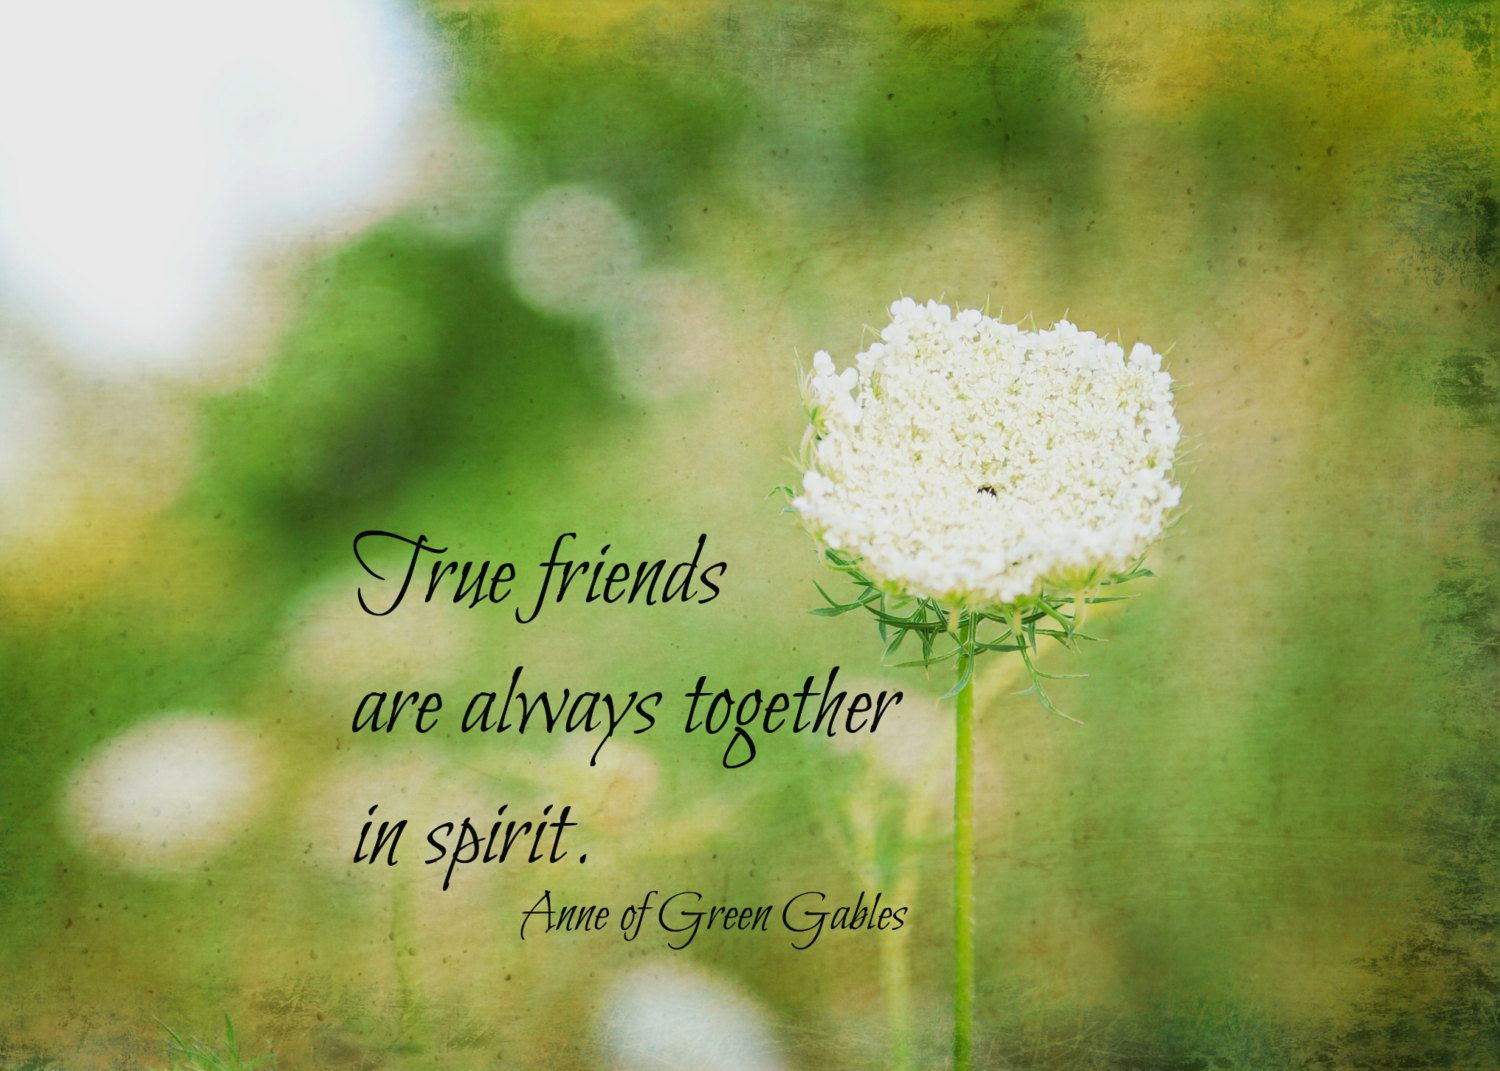 True Friends Quote Anne Of Green Gables Anne Of Green Gables